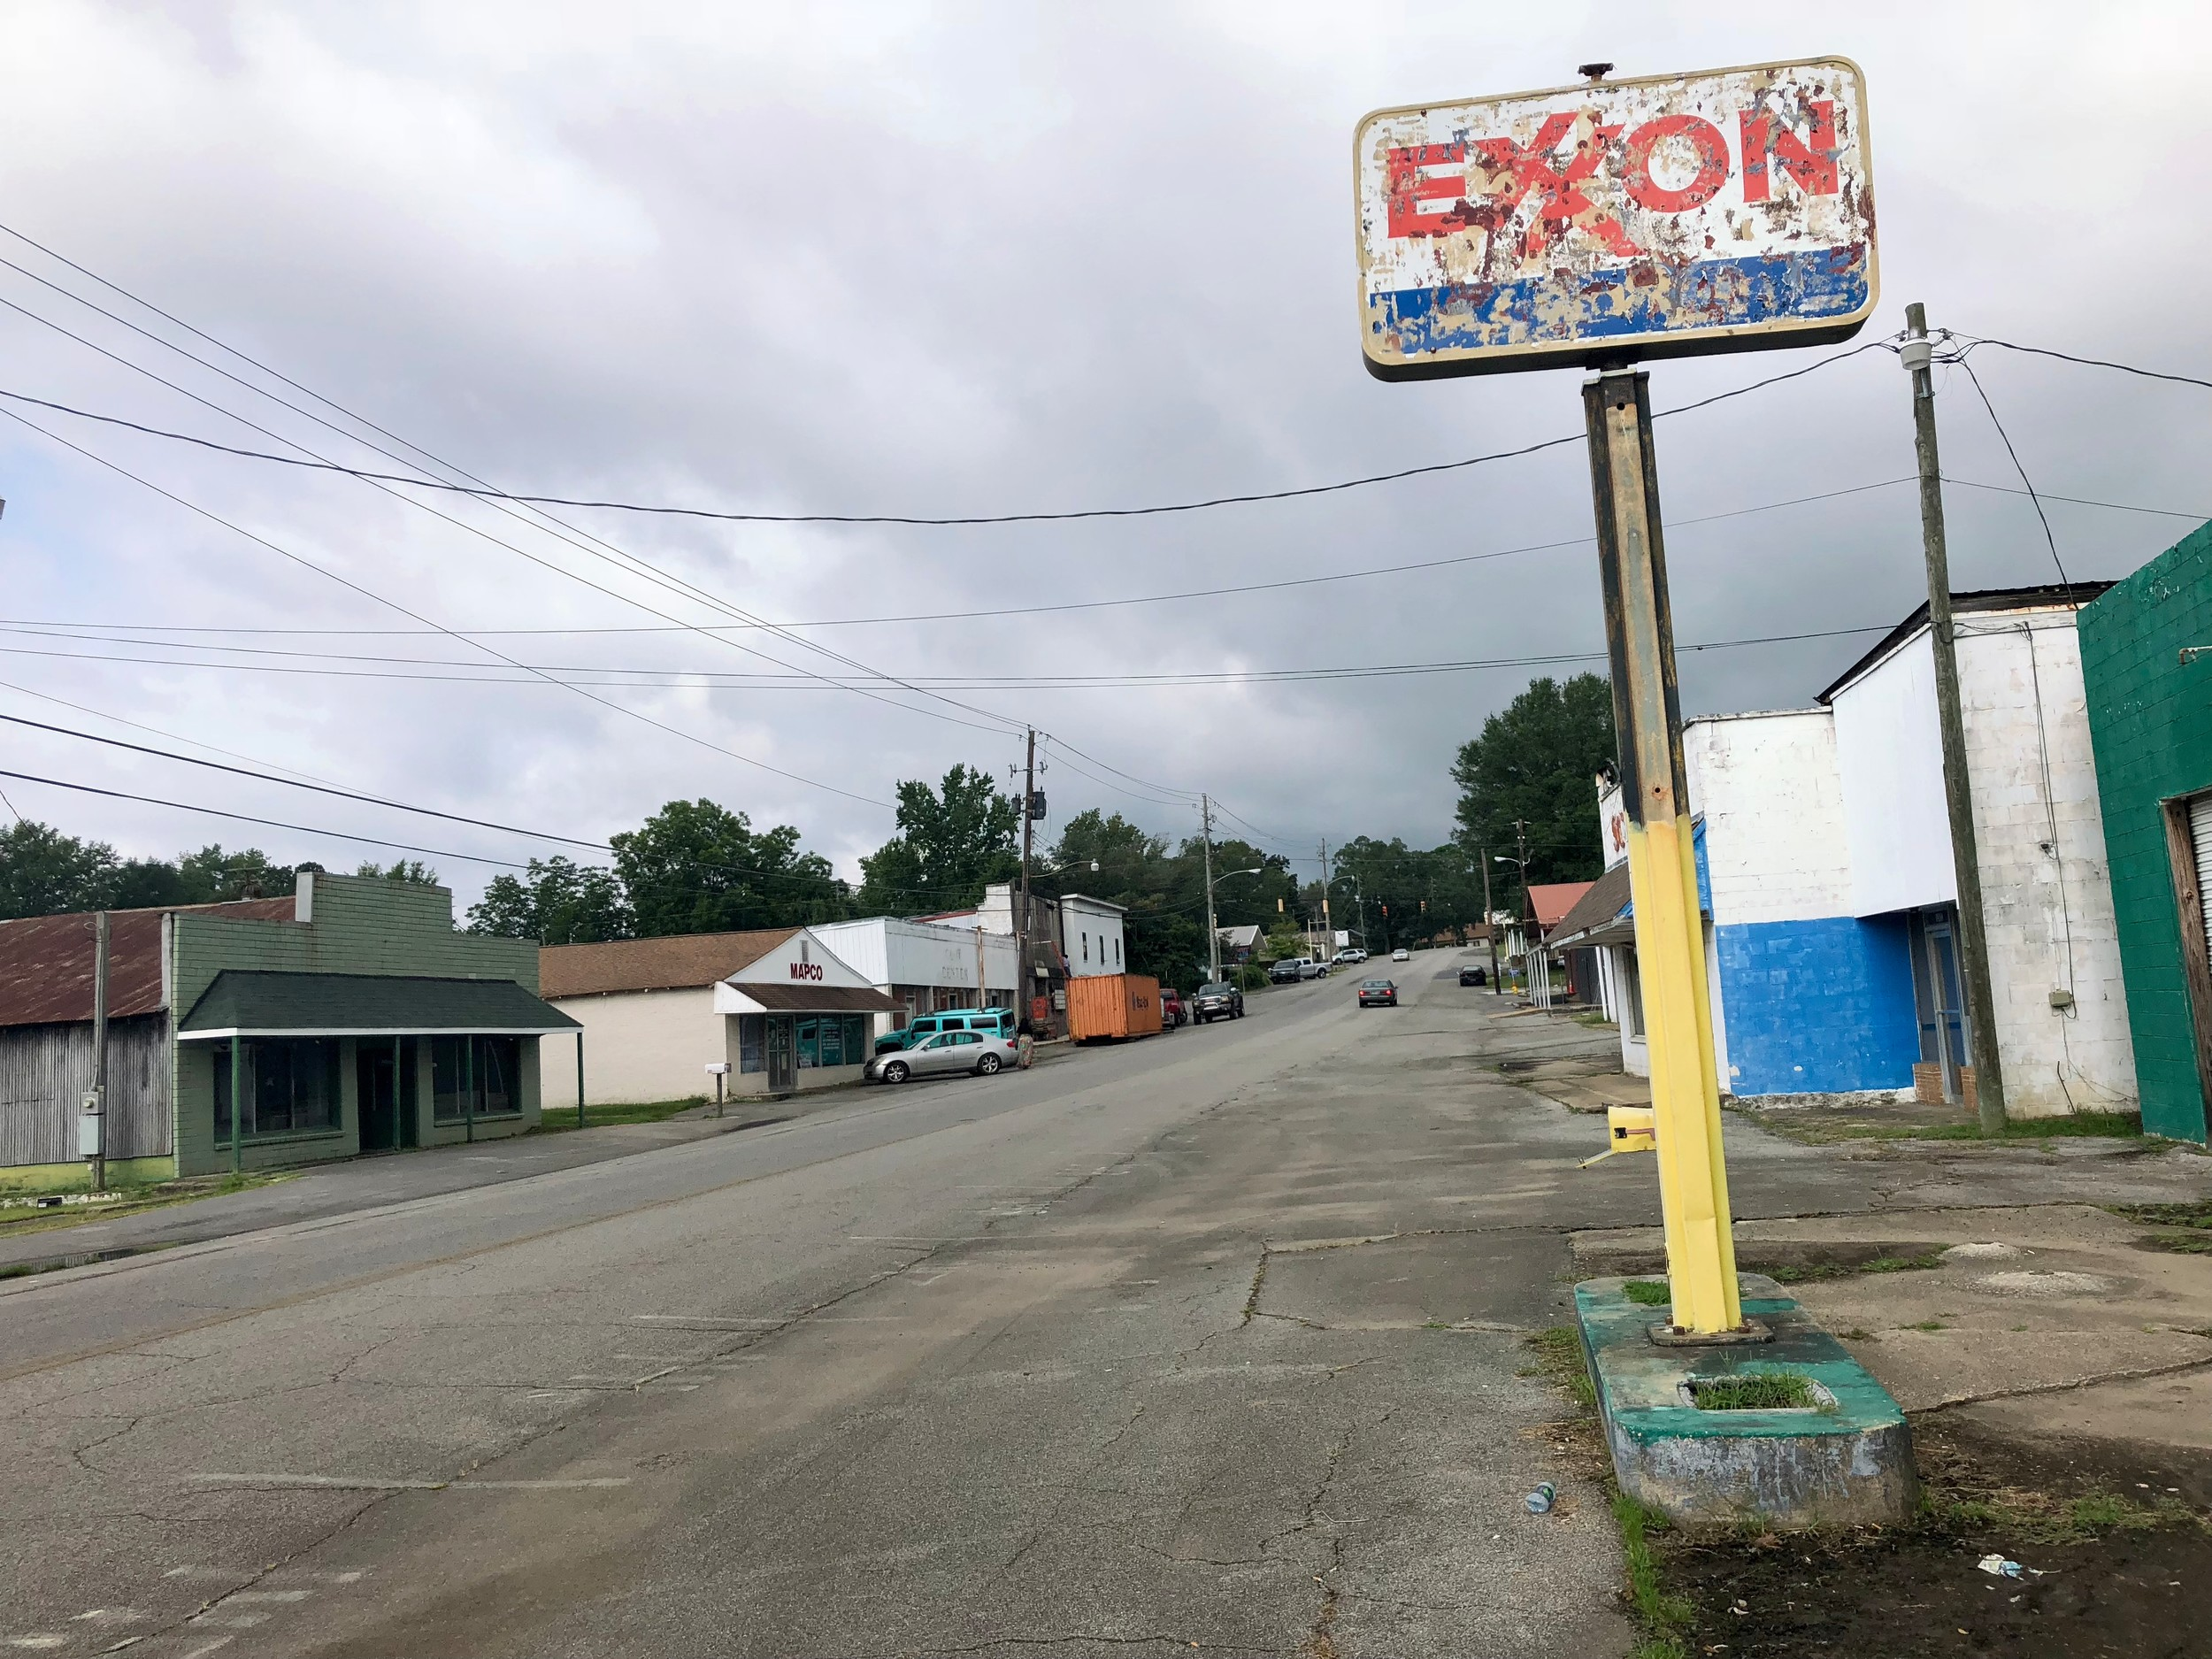 Main Street in Sumiton was the topic of discussion at the Tuesday meeting of the Sumiton City Council. A group of citizens are hoping to form a committee to help revitalize the area.